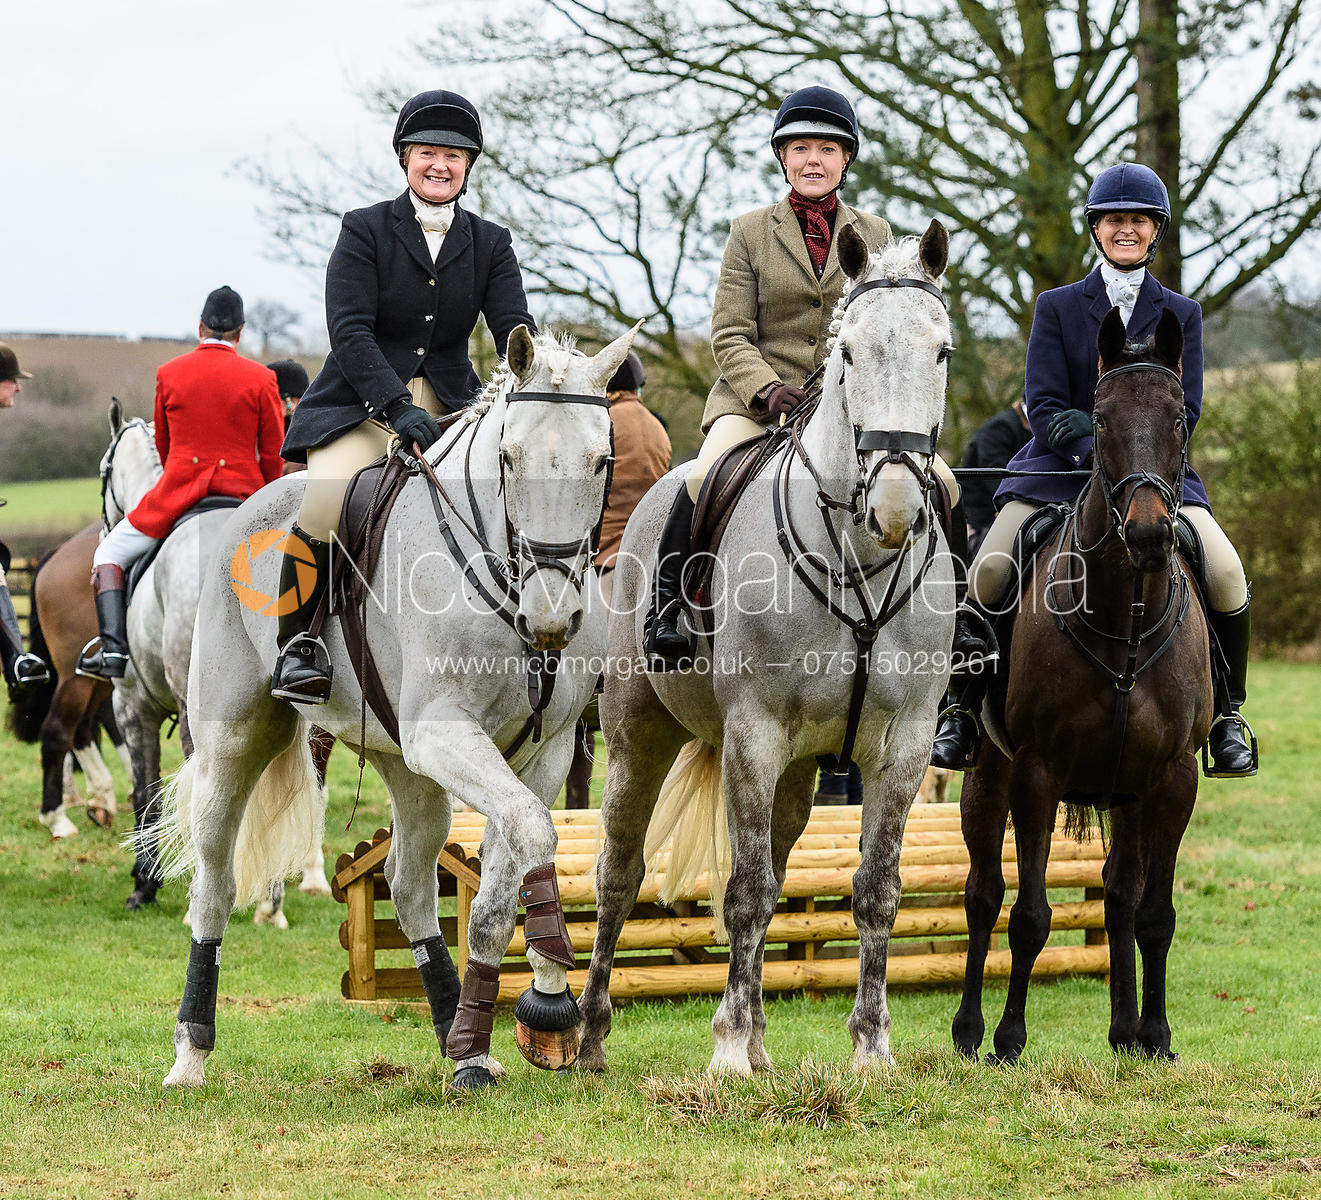 Georgie Mason, Claire Hallam, Justine Smiley-Jones at the meet at Eaton Grange. The Belvoir Hunt at Eaton Grange 7/2